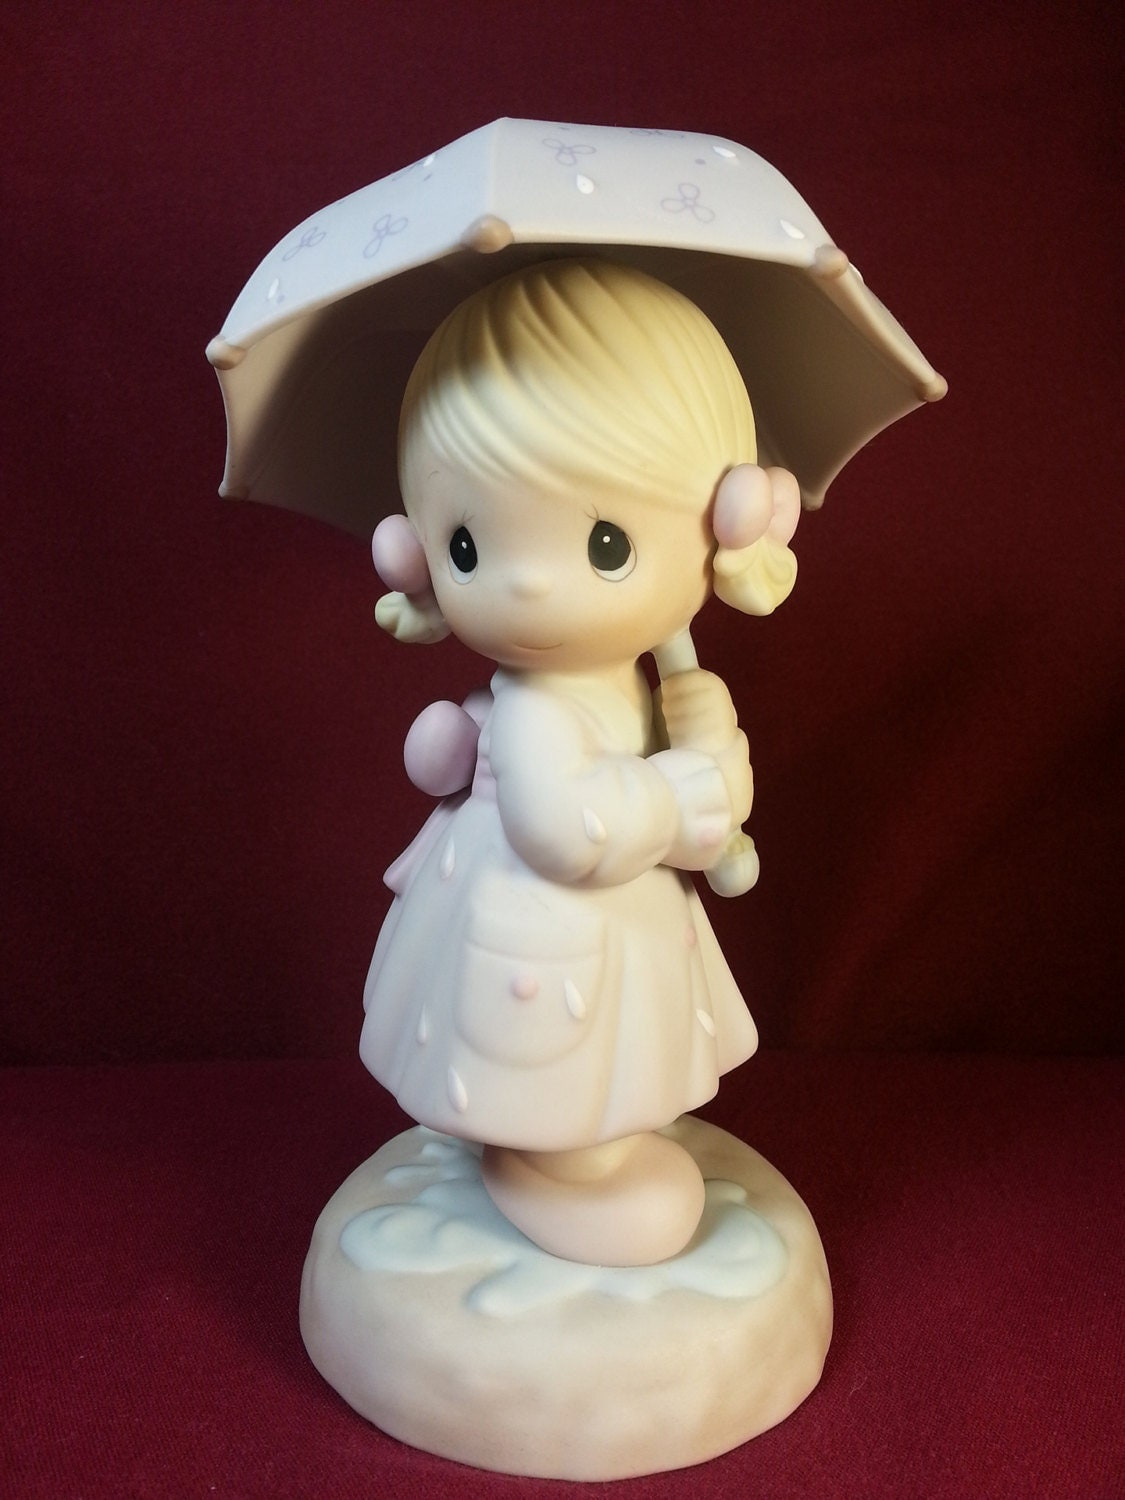 April Precious Moments Figurine Precious Moments Figurines